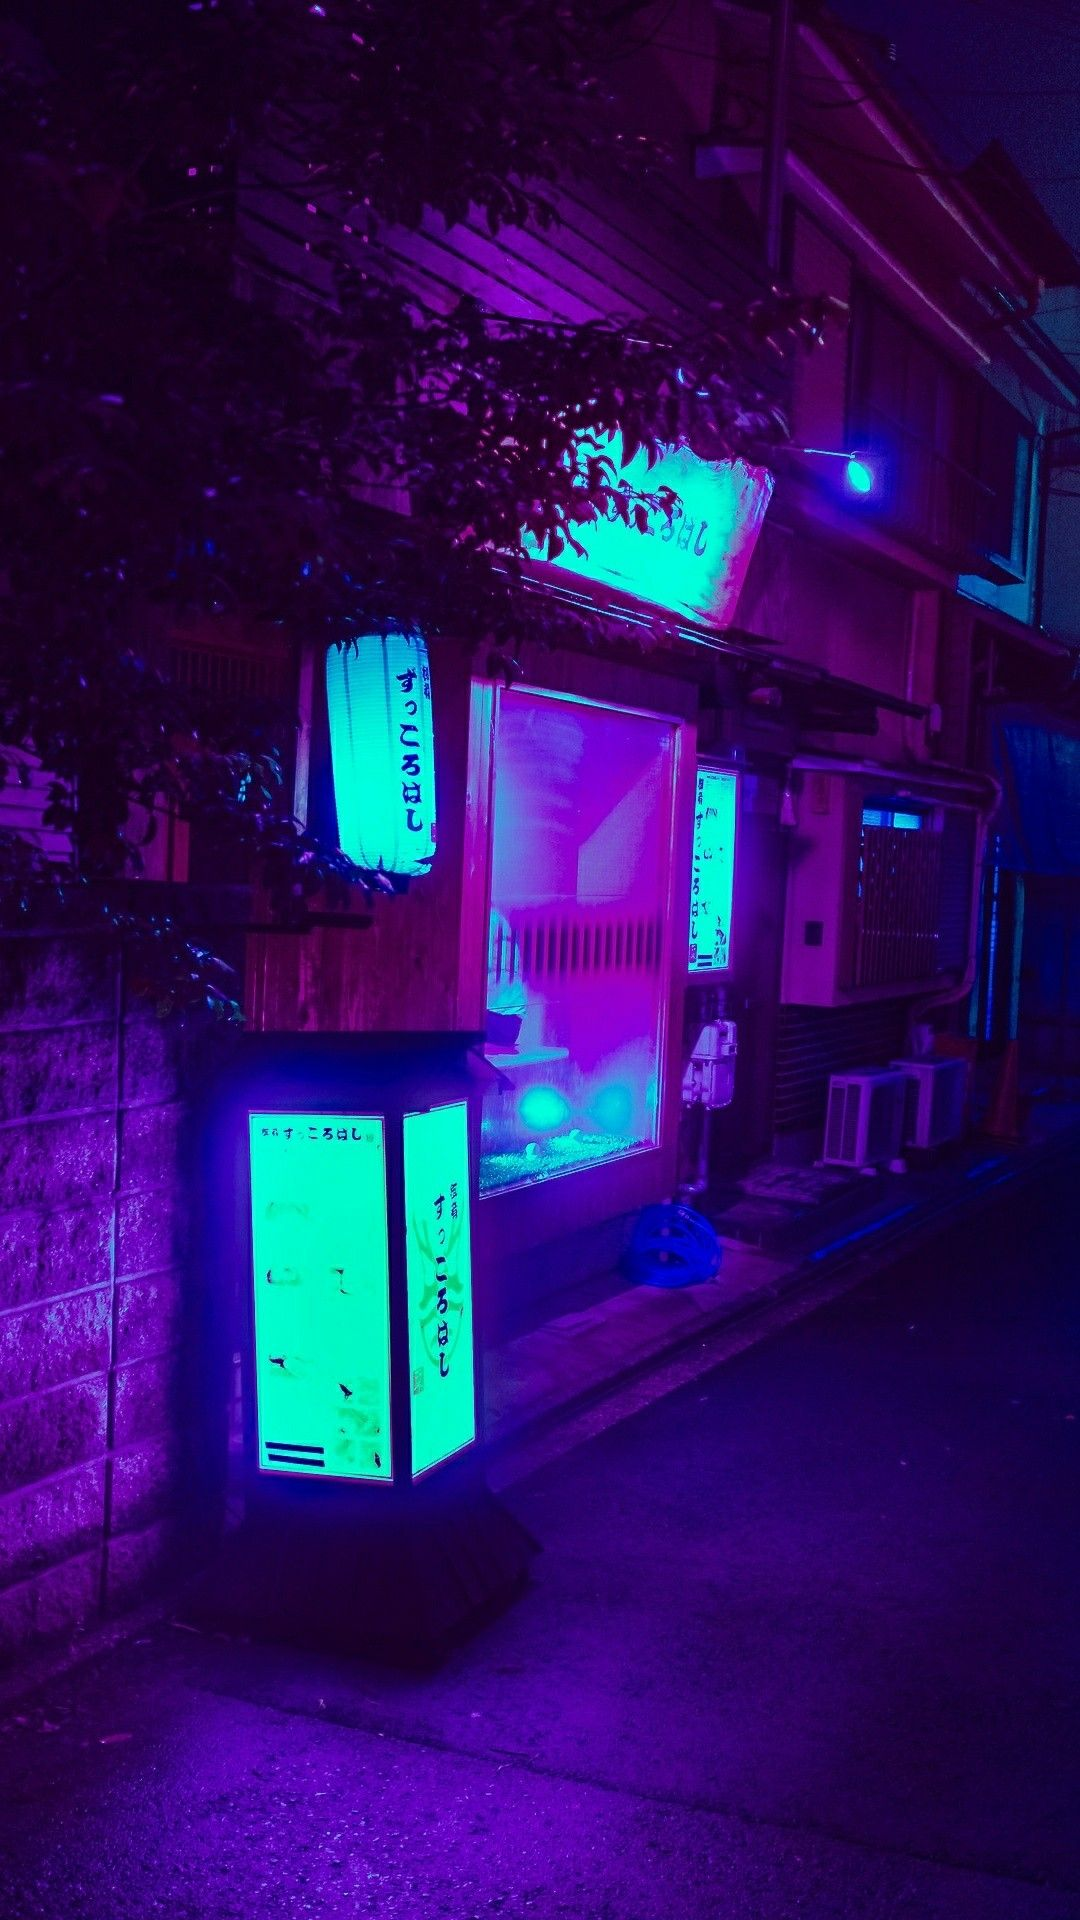 Pin by Penpilas on Lofi condition (With images) Blue